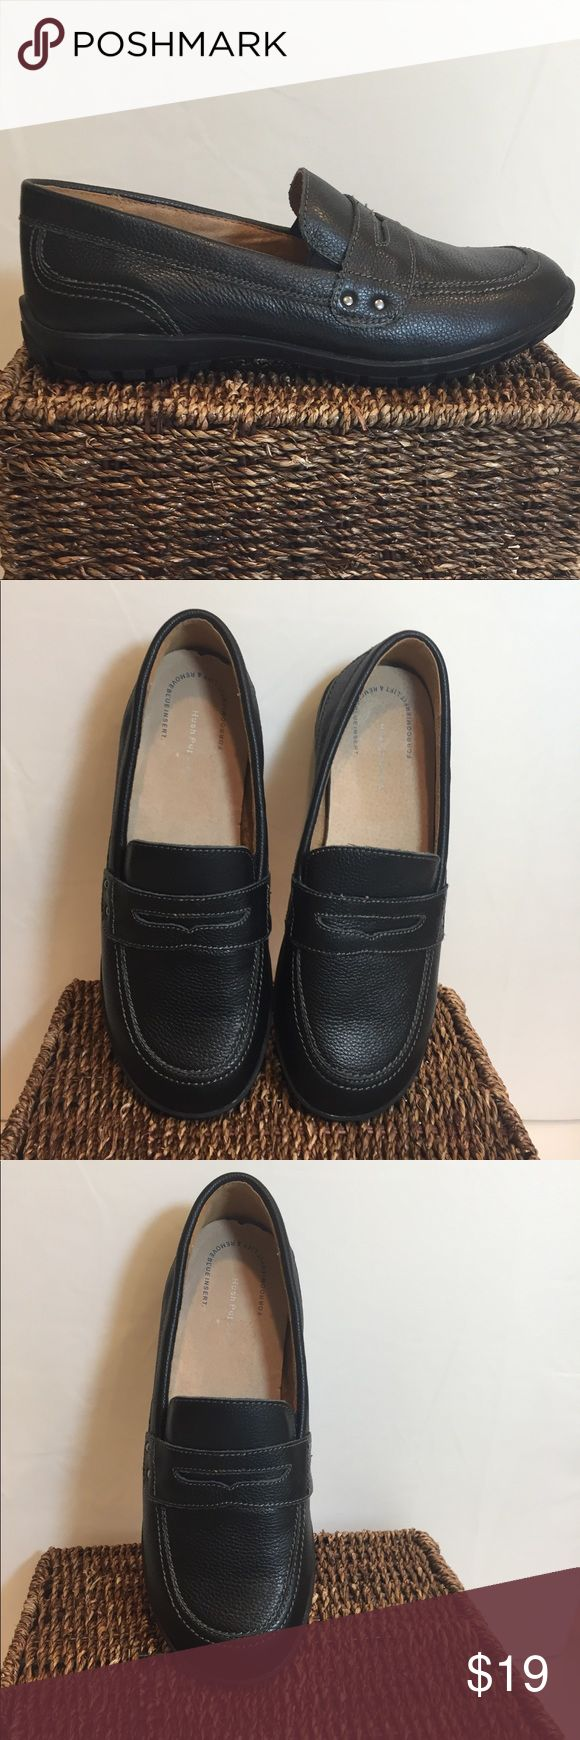 Leather NEW Hush Puppies Adjustable Penny Loafers Dual Fit System allows the removal of the inner insoles for roomier fit. Genuine leather with breathable microfiber lining. Flexible outsole with good traction. Retails for $68.  NEW without tags. Hush Puppies Shoes Flats & Loafers